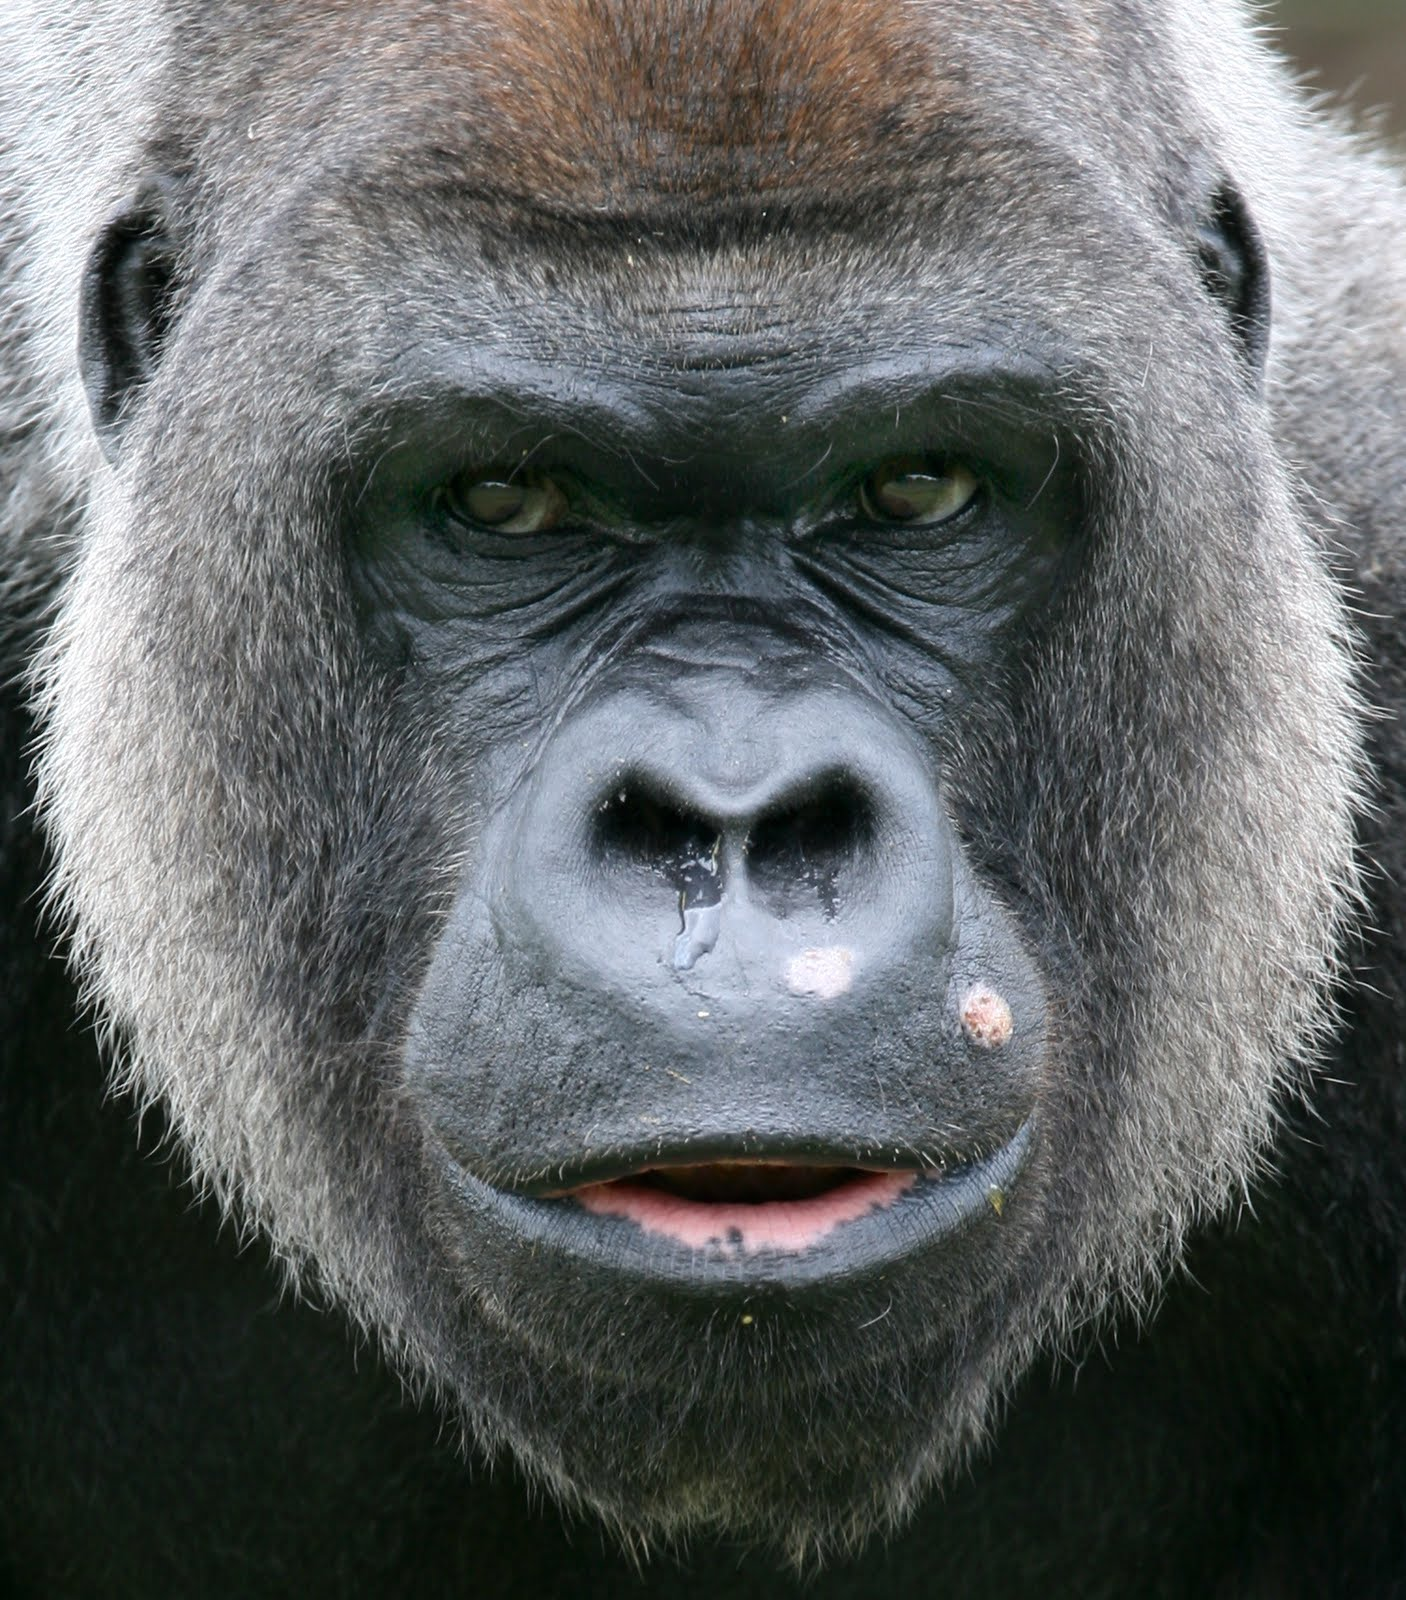 Gorilla face - photo#1